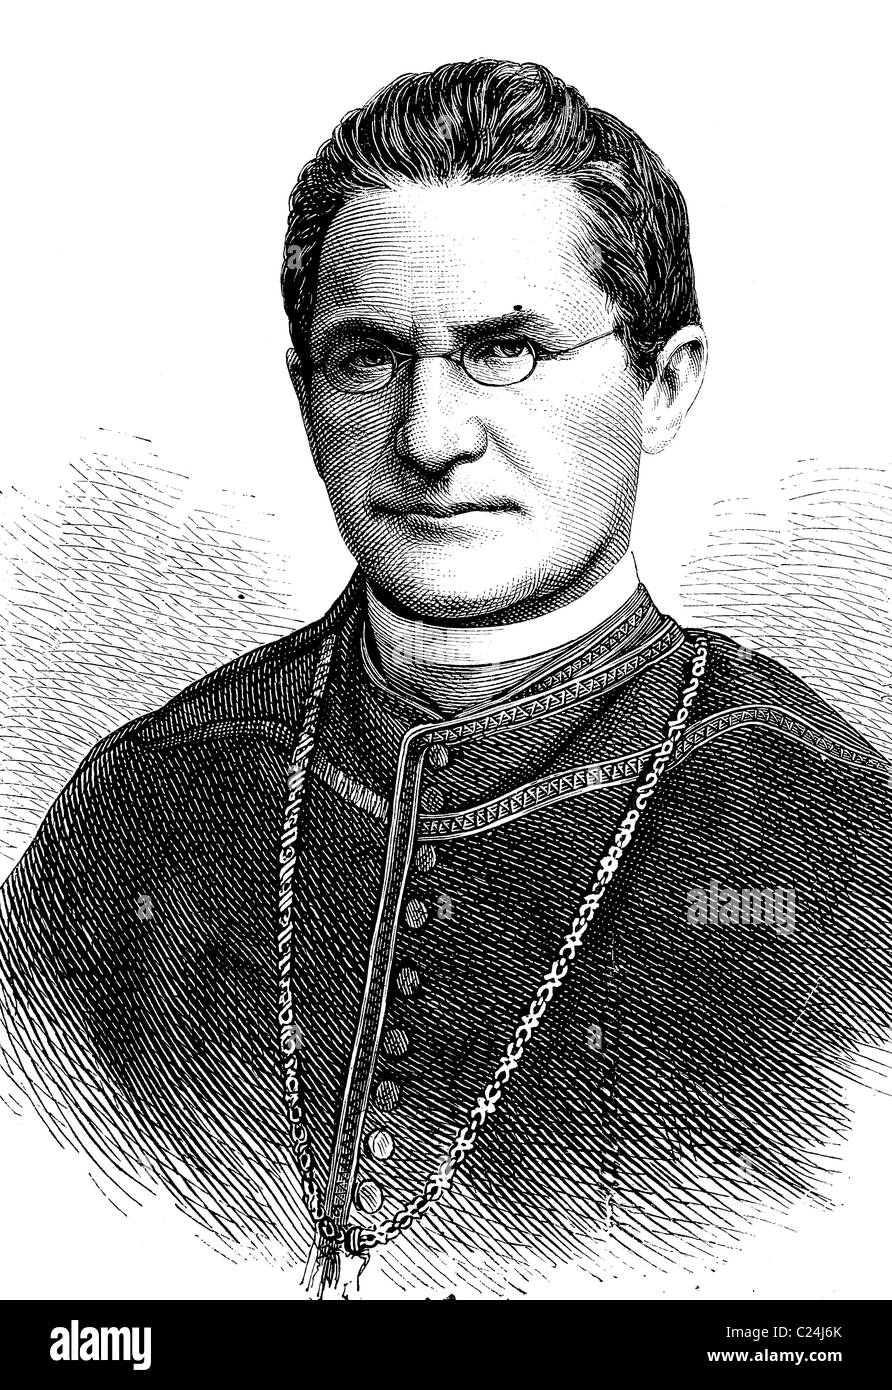 Auxiliary Bishop Lothar von Kuebel, administrator of the Archdiocese of Freiburg, 1823 - 1881, historical illustration, - Stock Image